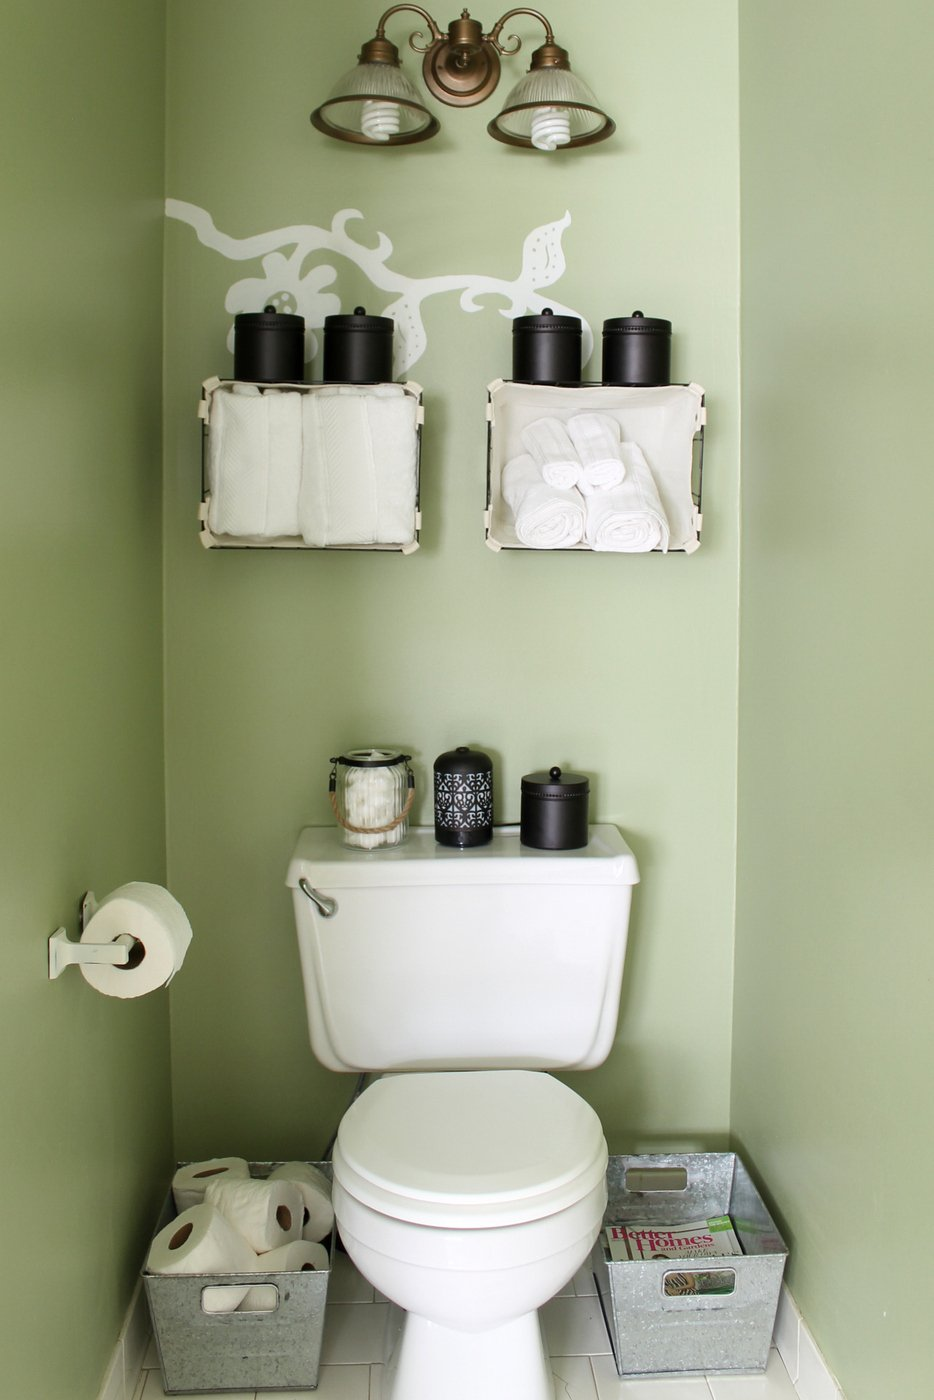 Small Bathroom Organization Ideas That Really Work Quick And Easy Ideas To Organize Your Tiny